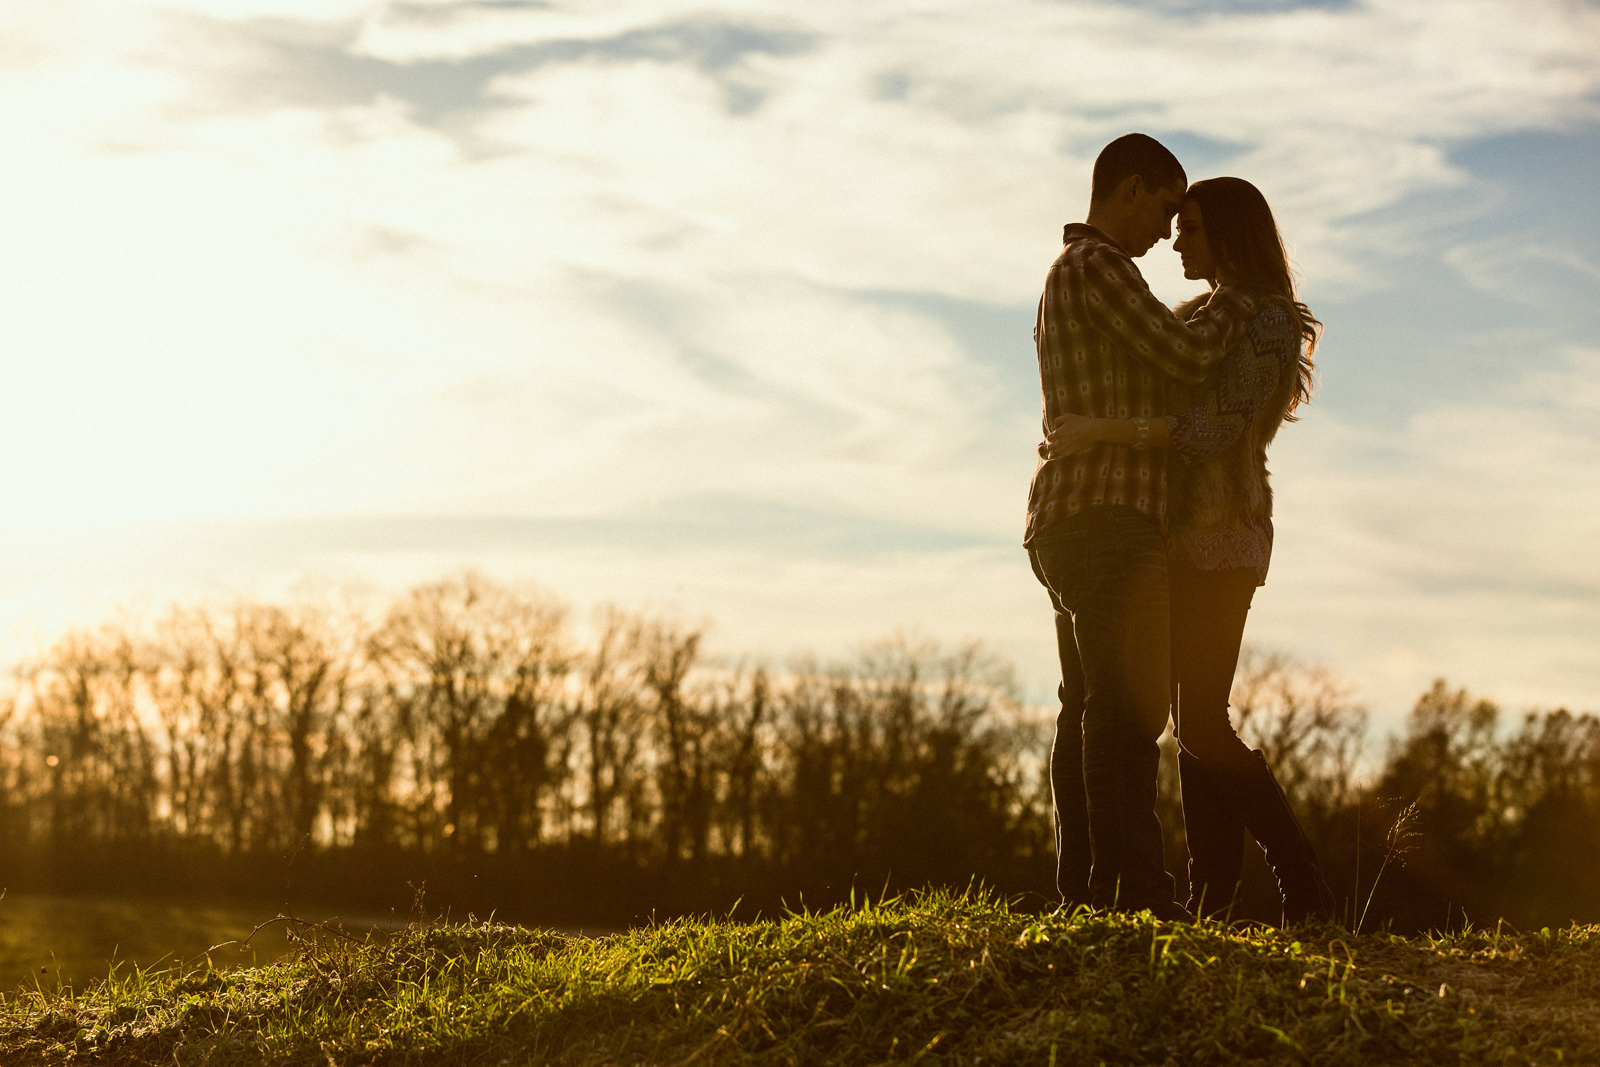 Oldani-Photography-St-Charles-August-A-Busch-Memorial-Area-Engagement-Session-engagement-photos_20141128_164927-2.jpg